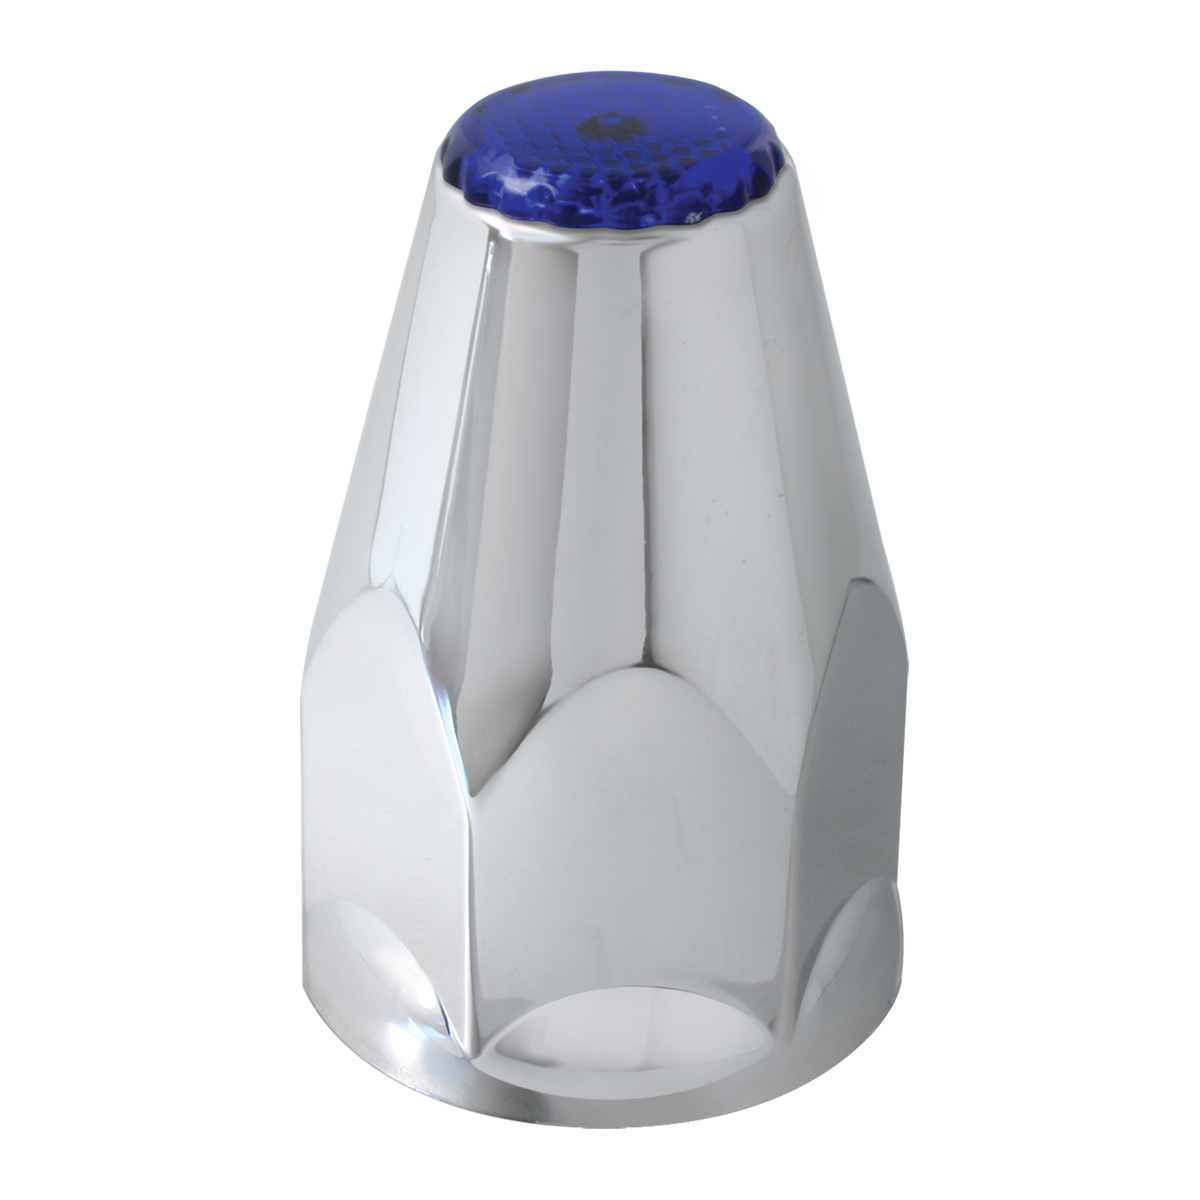 Classic Chrome Plastic 33mm Lug Nut Cover with Blue Reflector